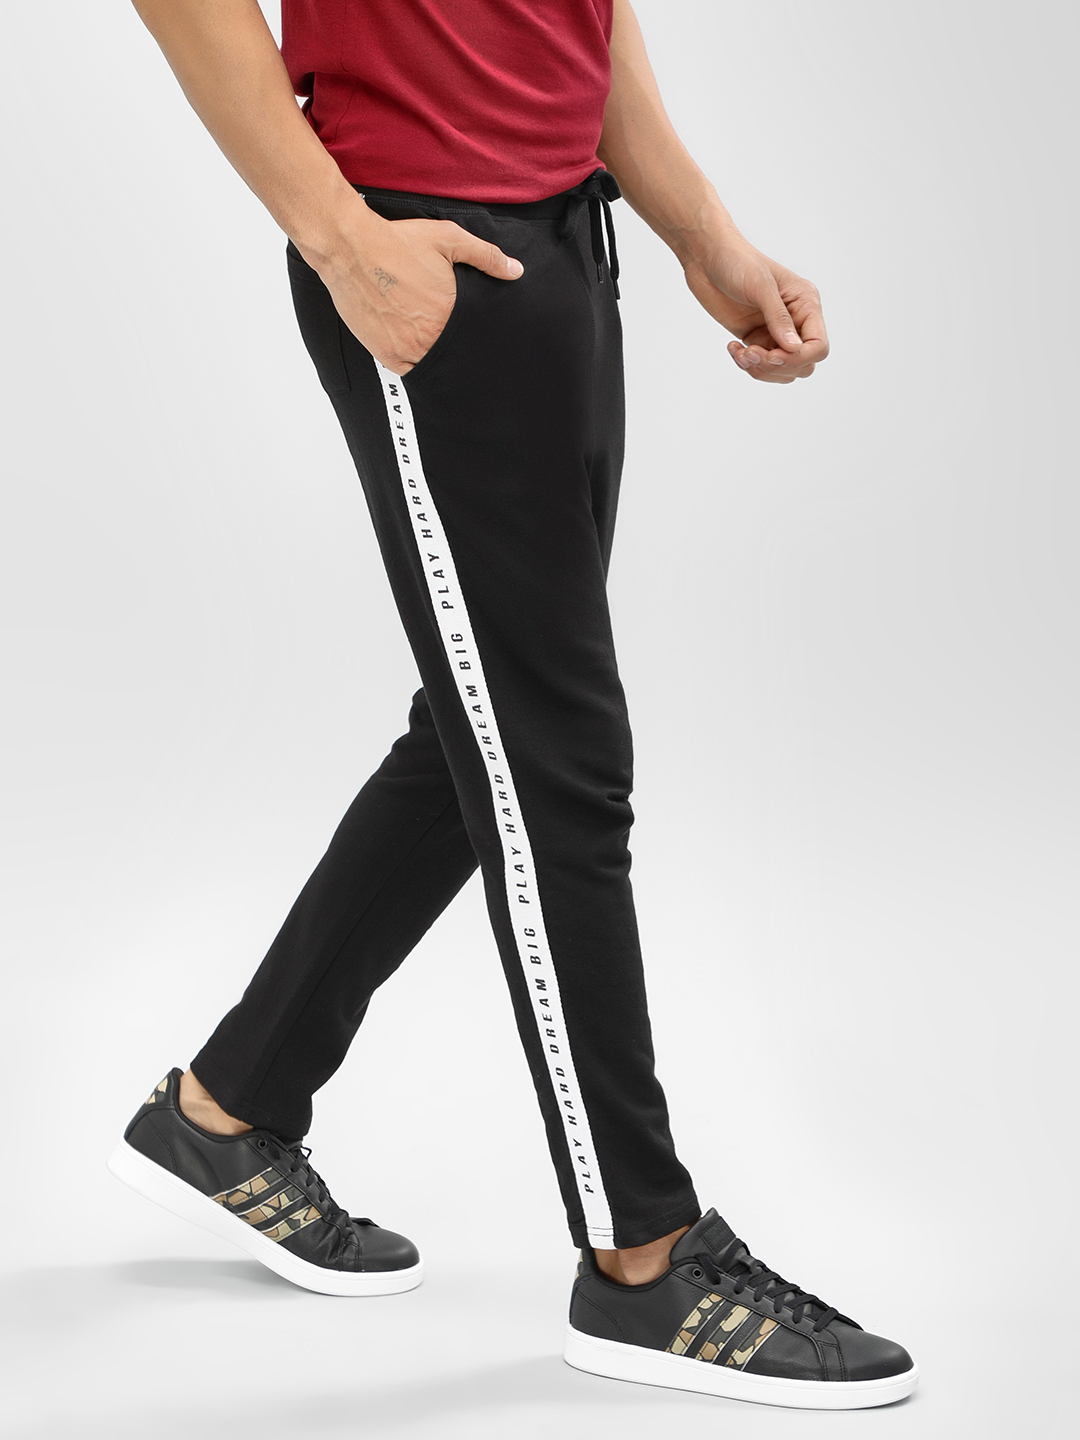 Garcon Black Cropped Joggers With Printed Side Tape 1